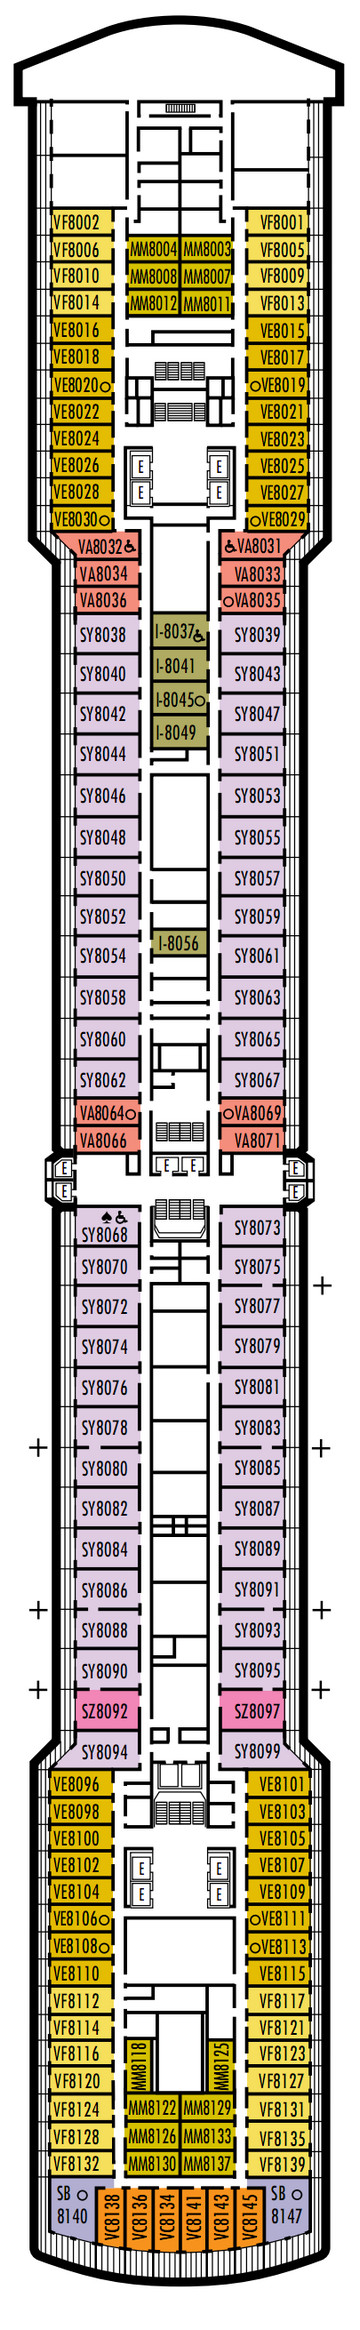 Noordam Deck 8 - Navigation Deck layout